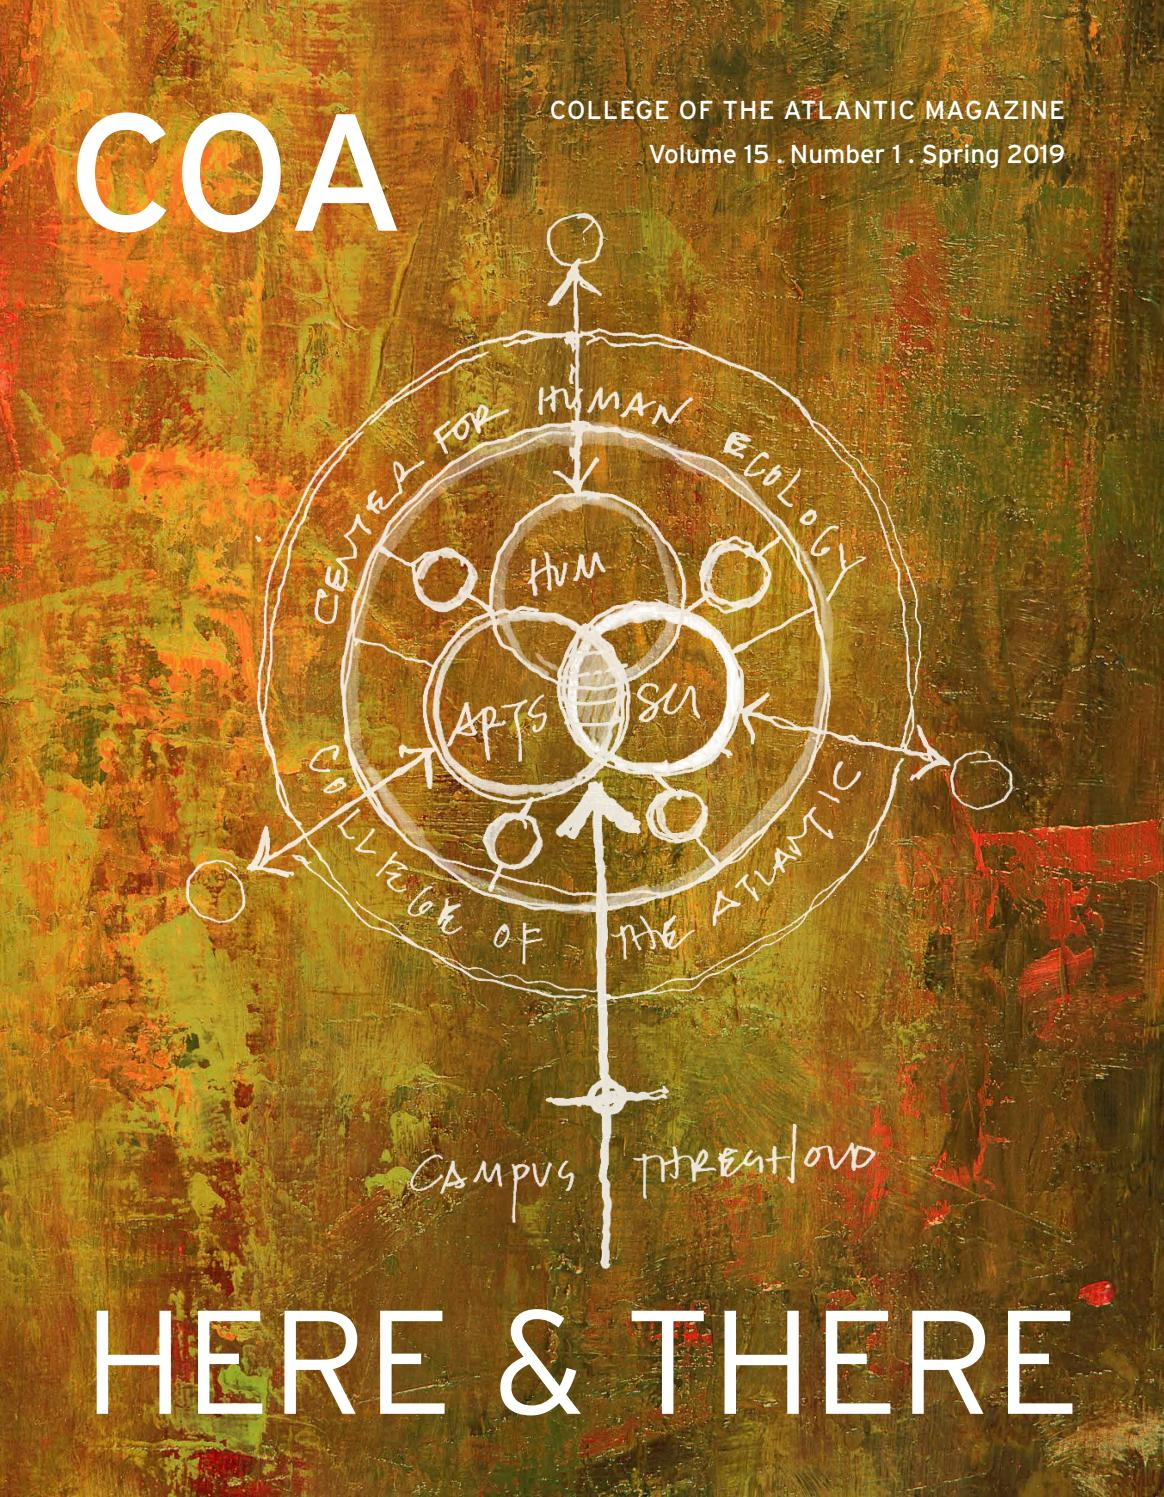 Here & There: COA Magazine Spring 2019 by College of the